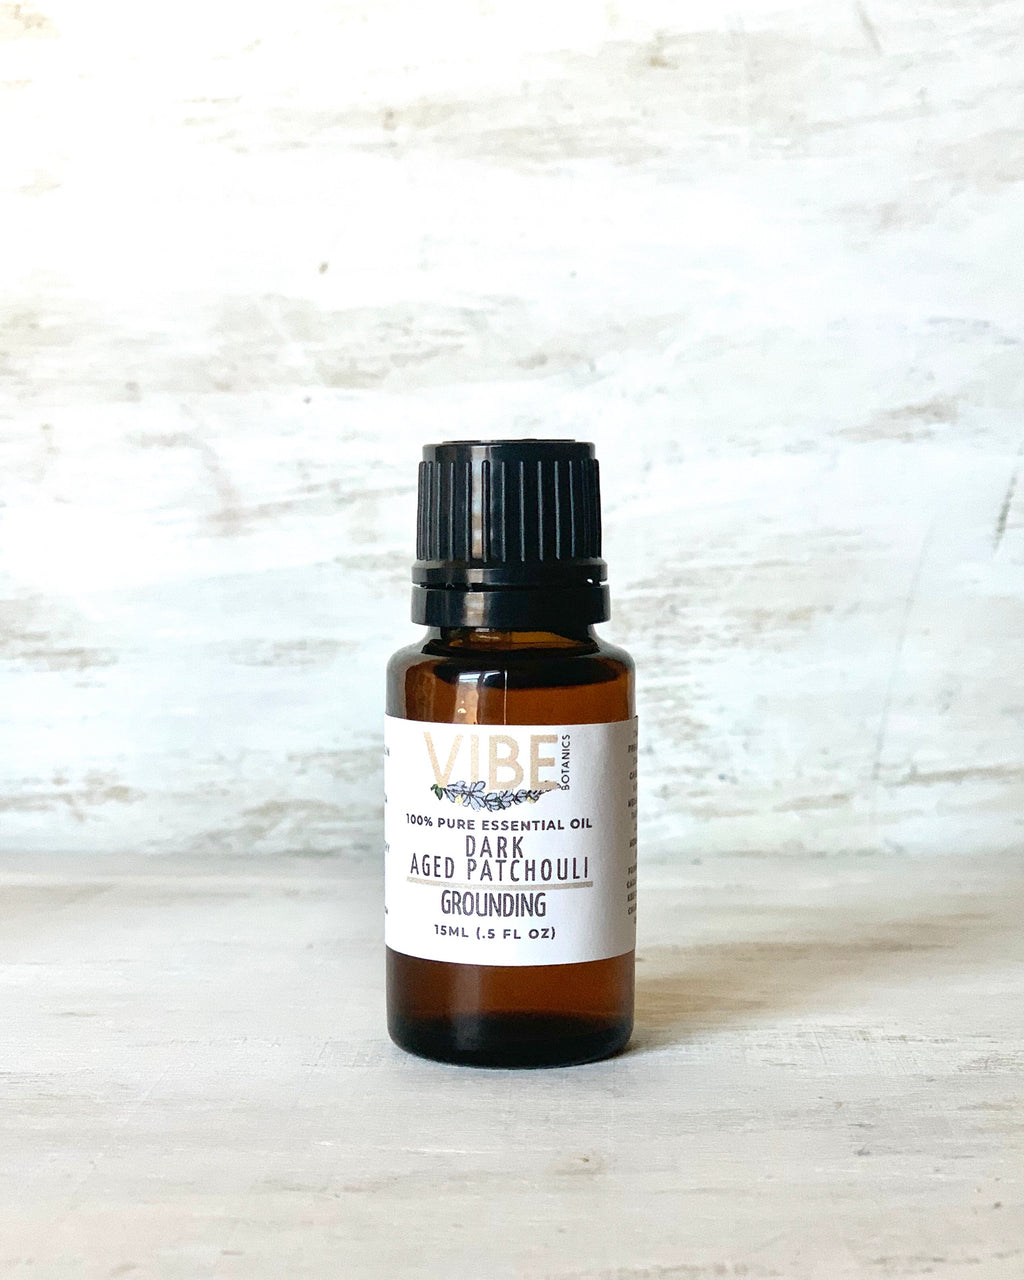 DARK AGED PATCHOULI Essential Oil